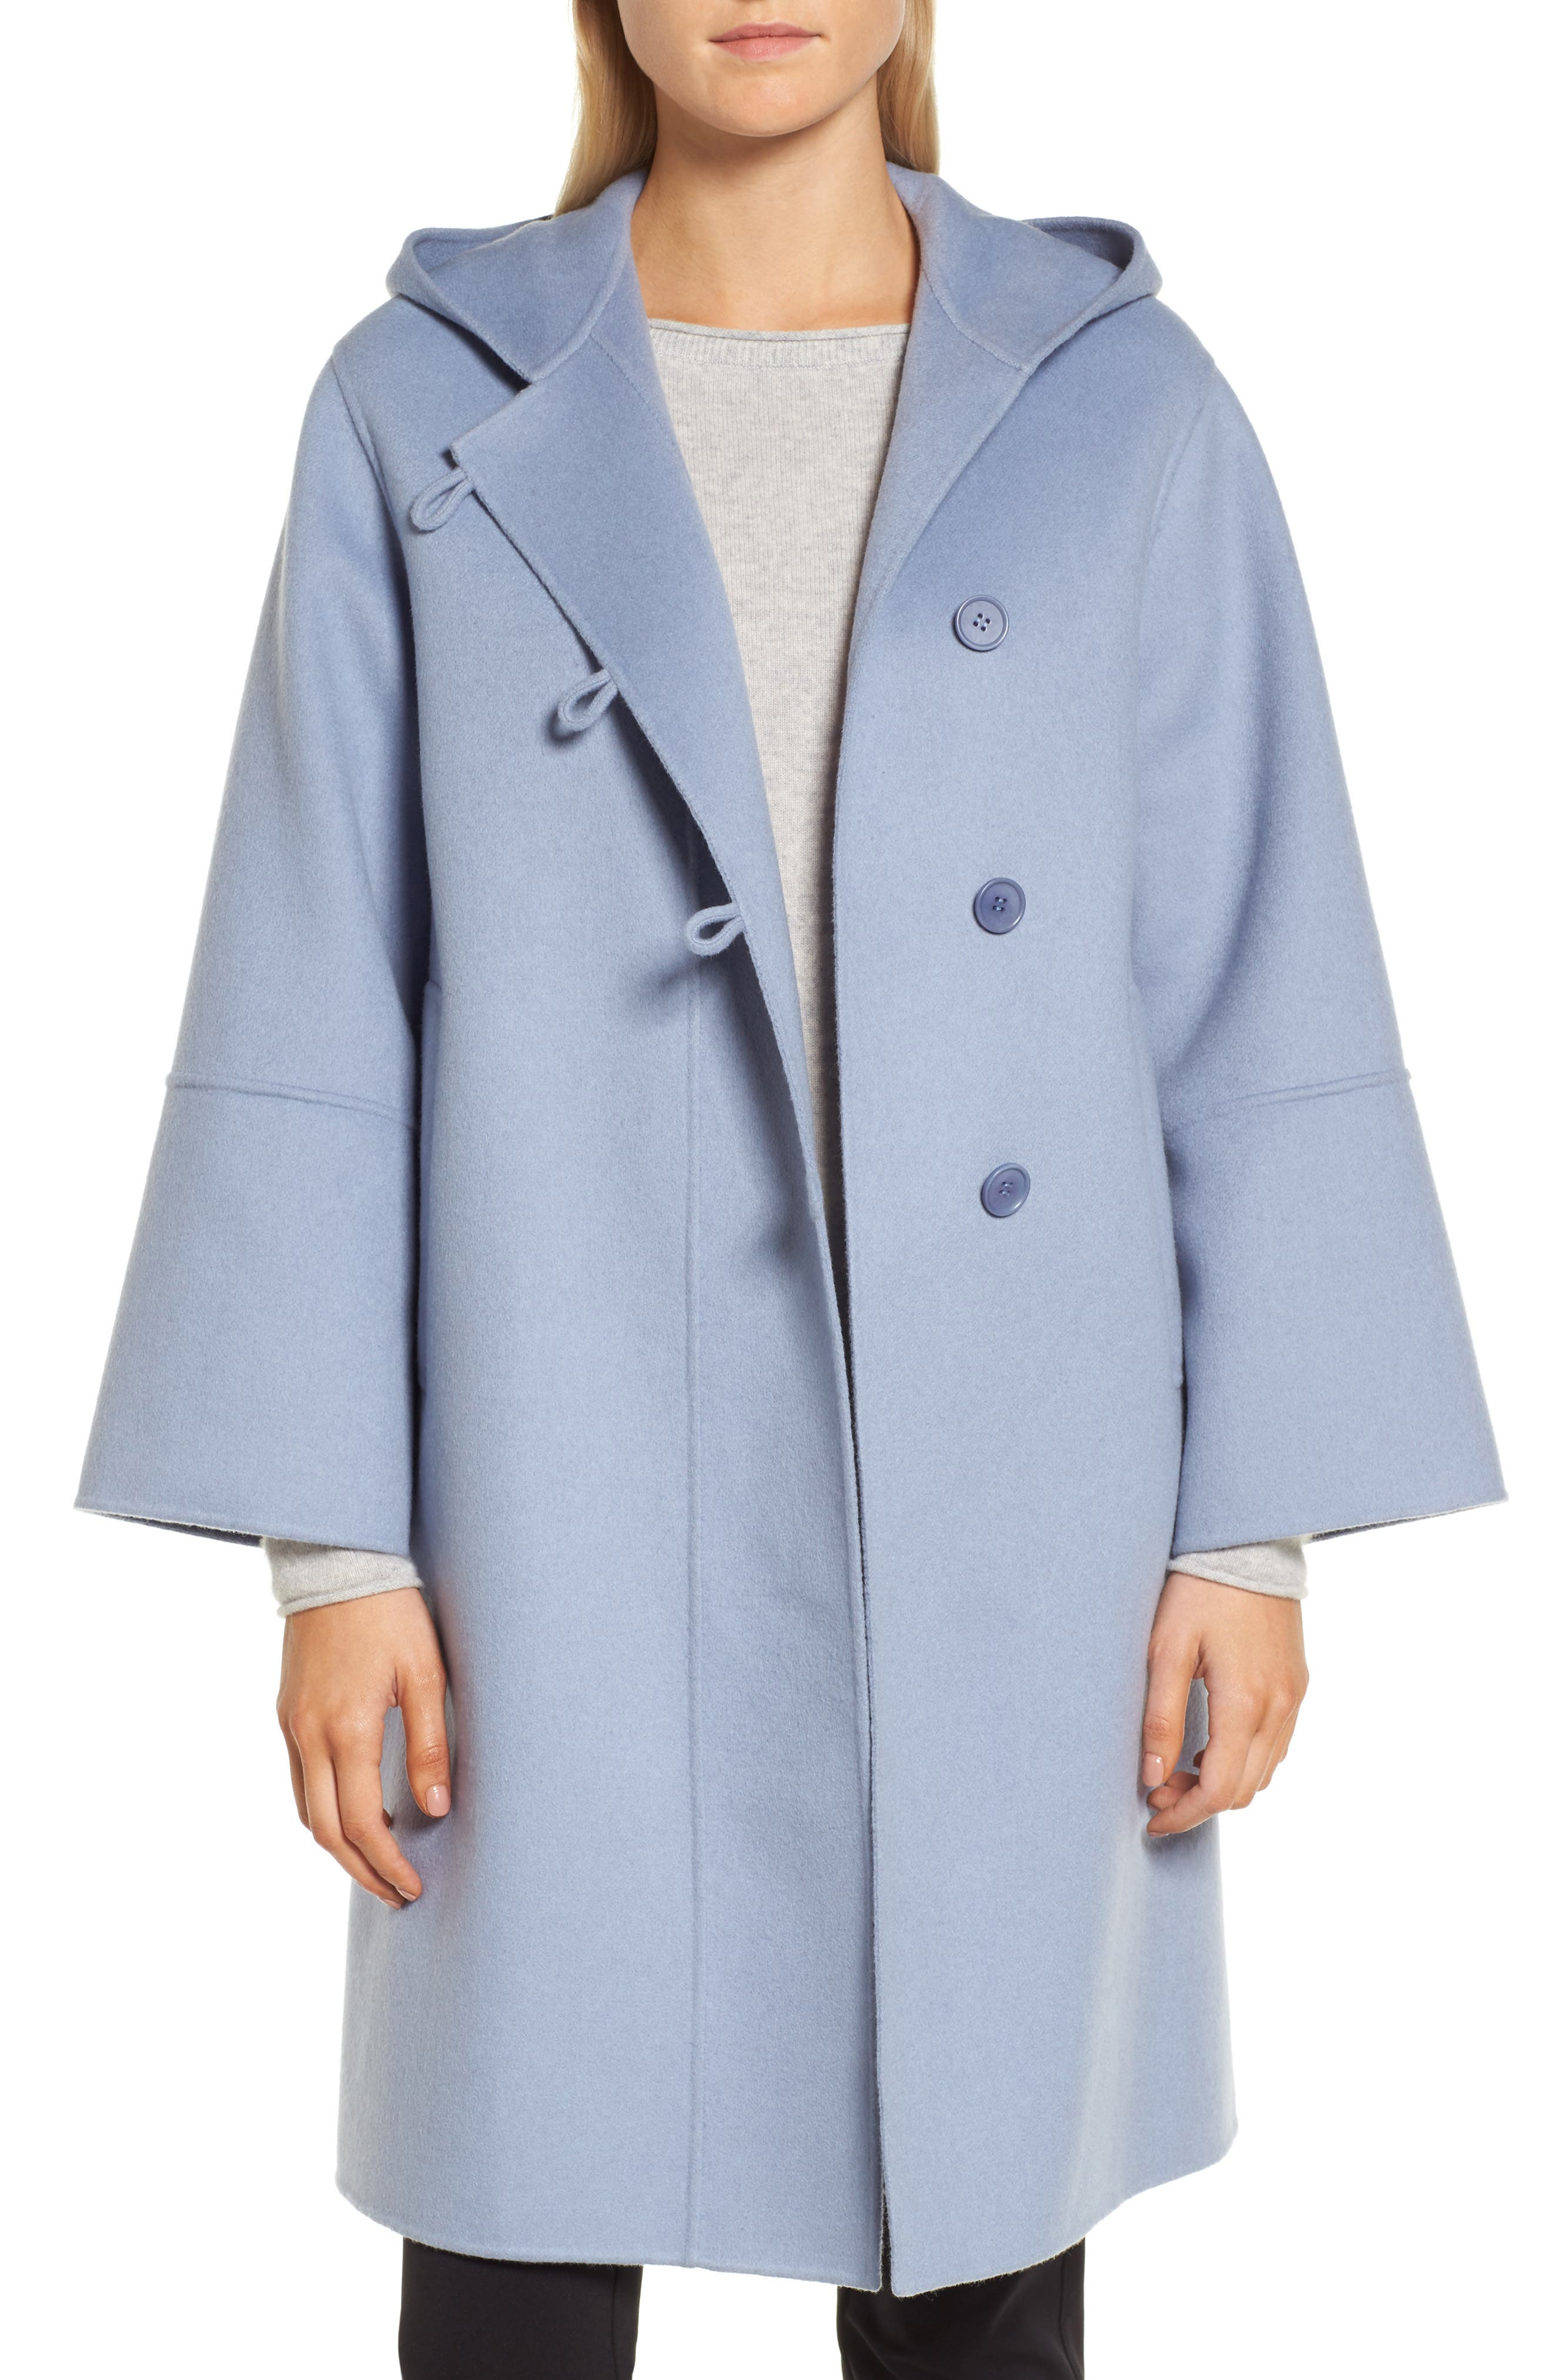 Hooded Wool & Cashmere Coat,                         Main,                         color, Blue Tempest